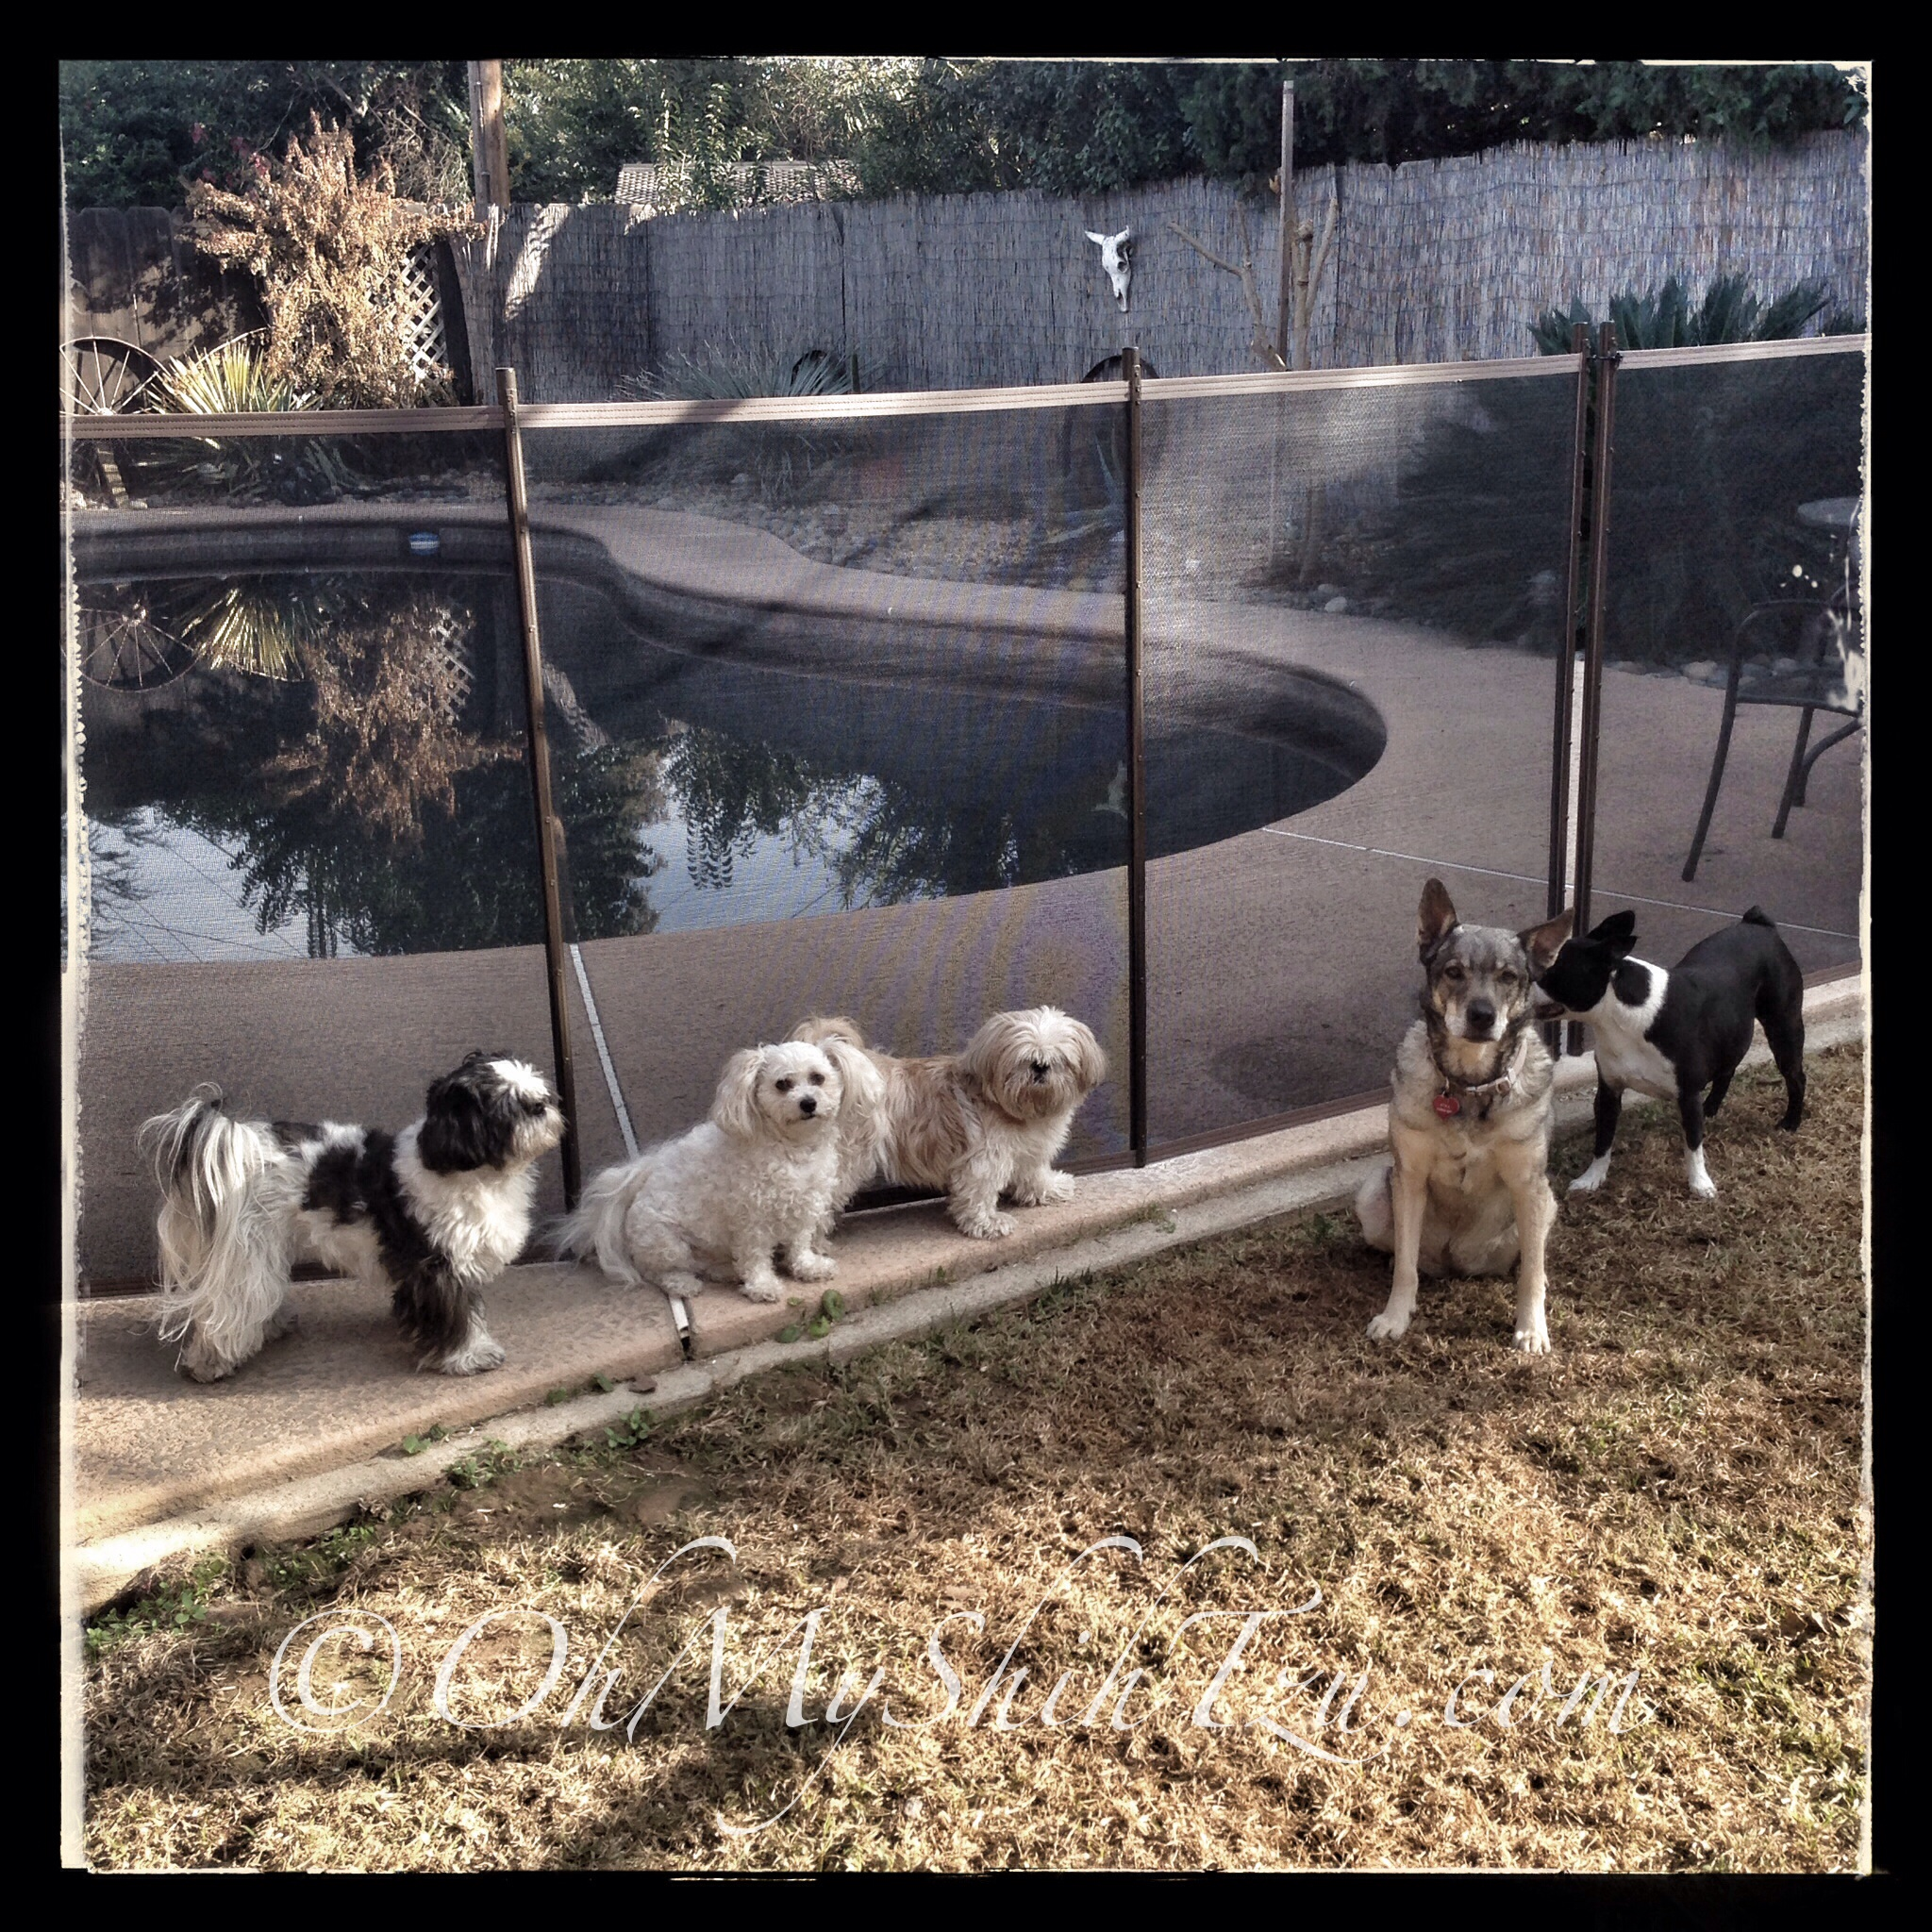 A New Pet Safe 4 Mesh Fence Was Installed To Keep The Littles Out Of Pool Area But Enjoy Backyard That They Love By